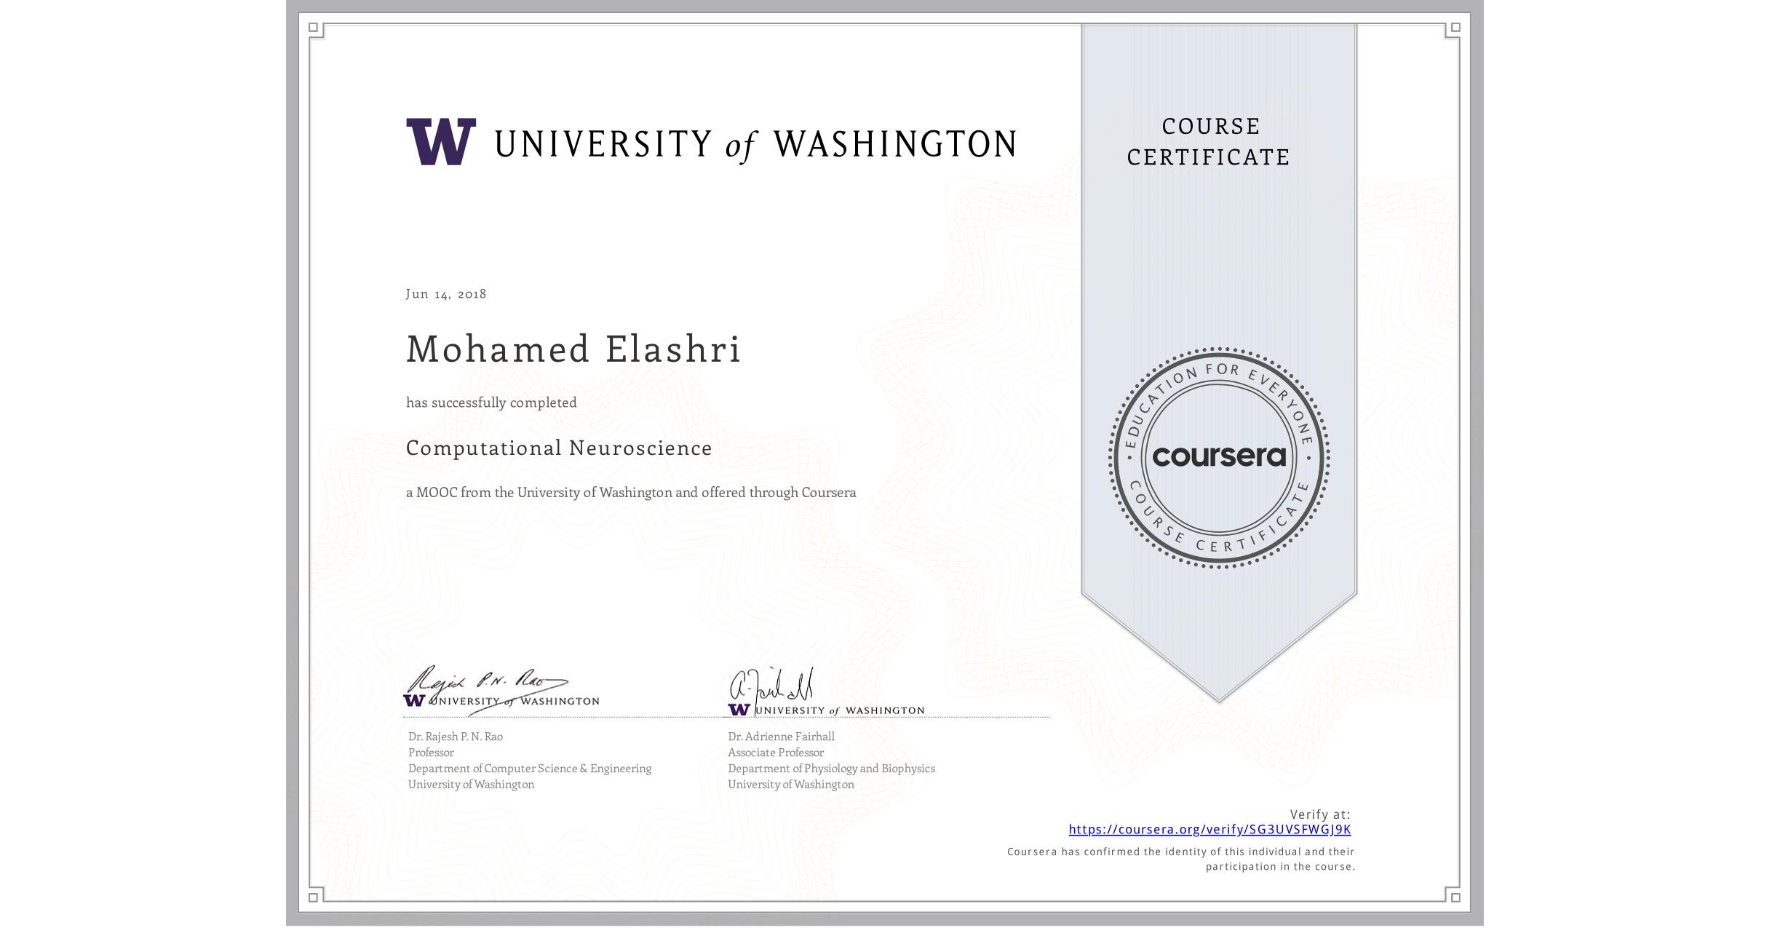 View certificate for Mohamed Elashri, Computational Neuroscience, an online non-credit course authorized by University of Washington and offered through Coursera